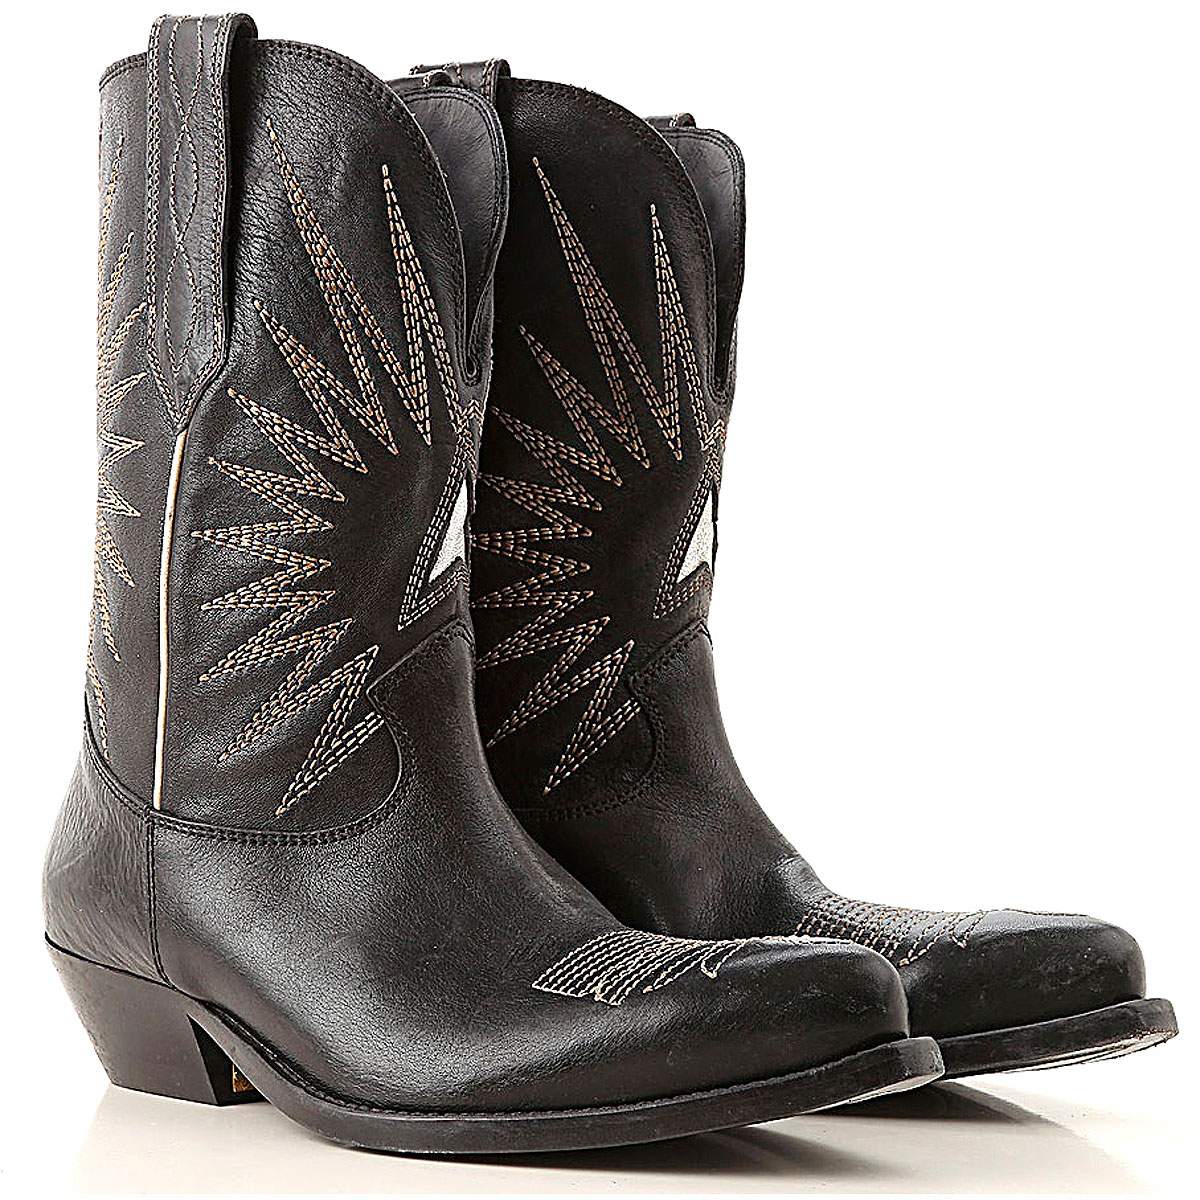 Golden Goose Boots for Women, Booties On Sale, Black, Leather, 2019, 6 7 8